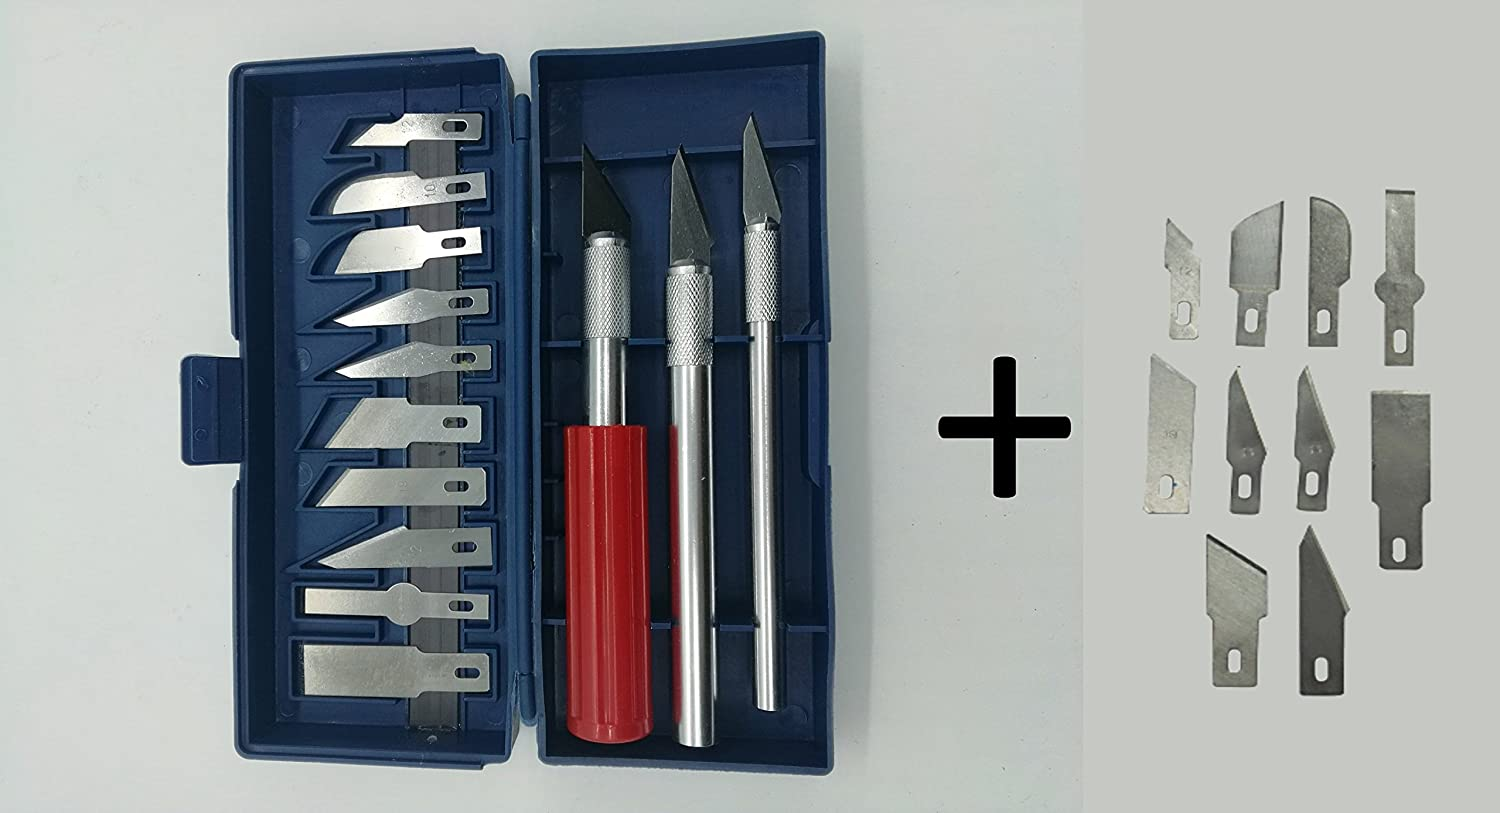 40 Piece 3D Printer Tool Kit Toolkit Includes Spatulas Tweezers Clean /& Finish 3D Prints Scrapers /& More Print Like a Pro AMX3d All The 3D Printing Tools /& Accessories Needed to Remove Pliers